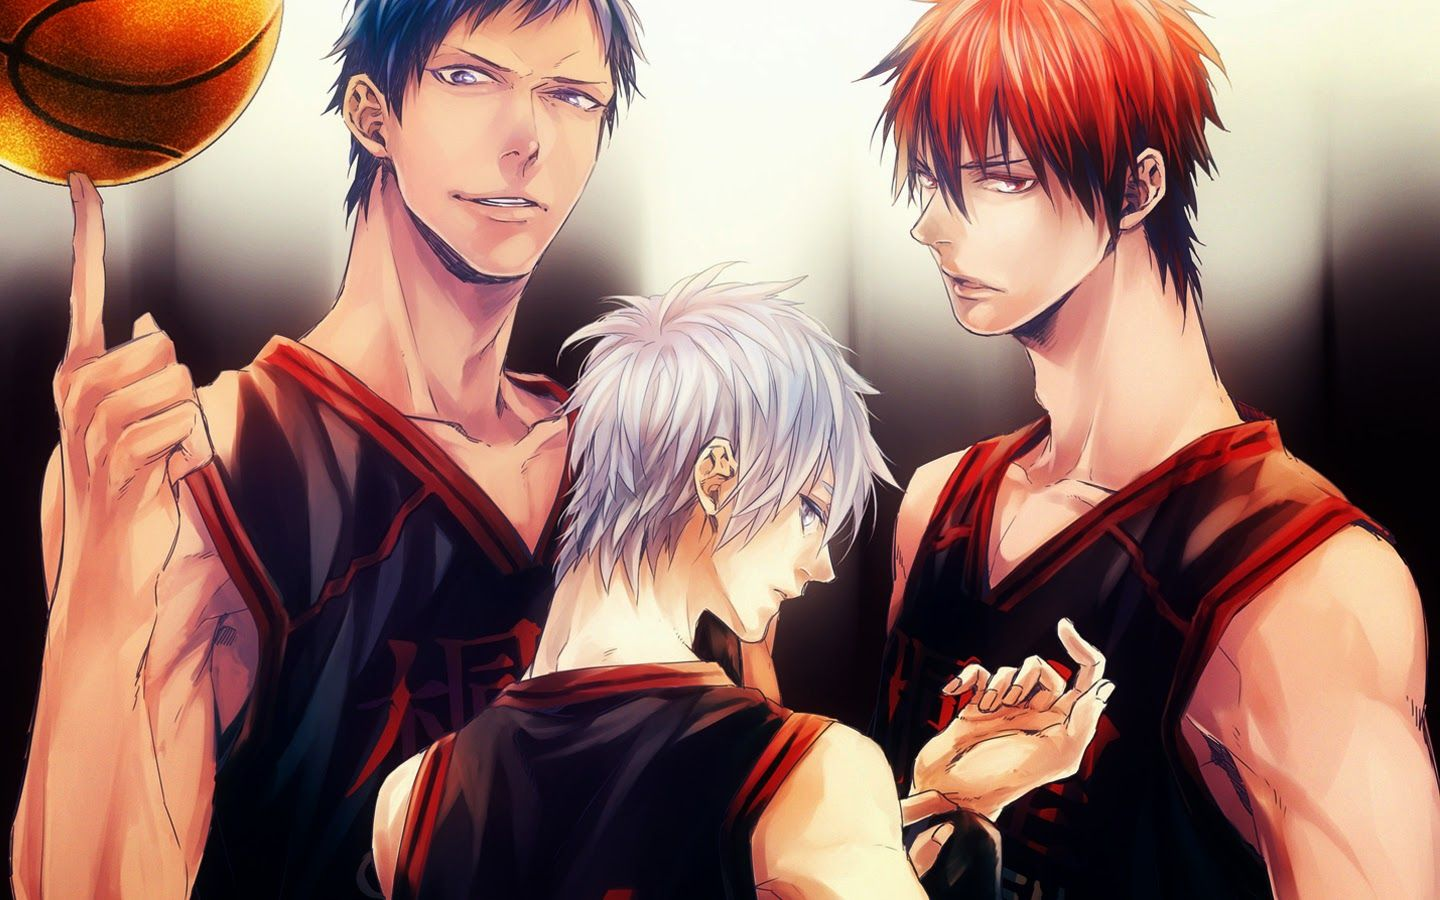 Kuroko And Kagami Wallpaper Desktop Background Hx6